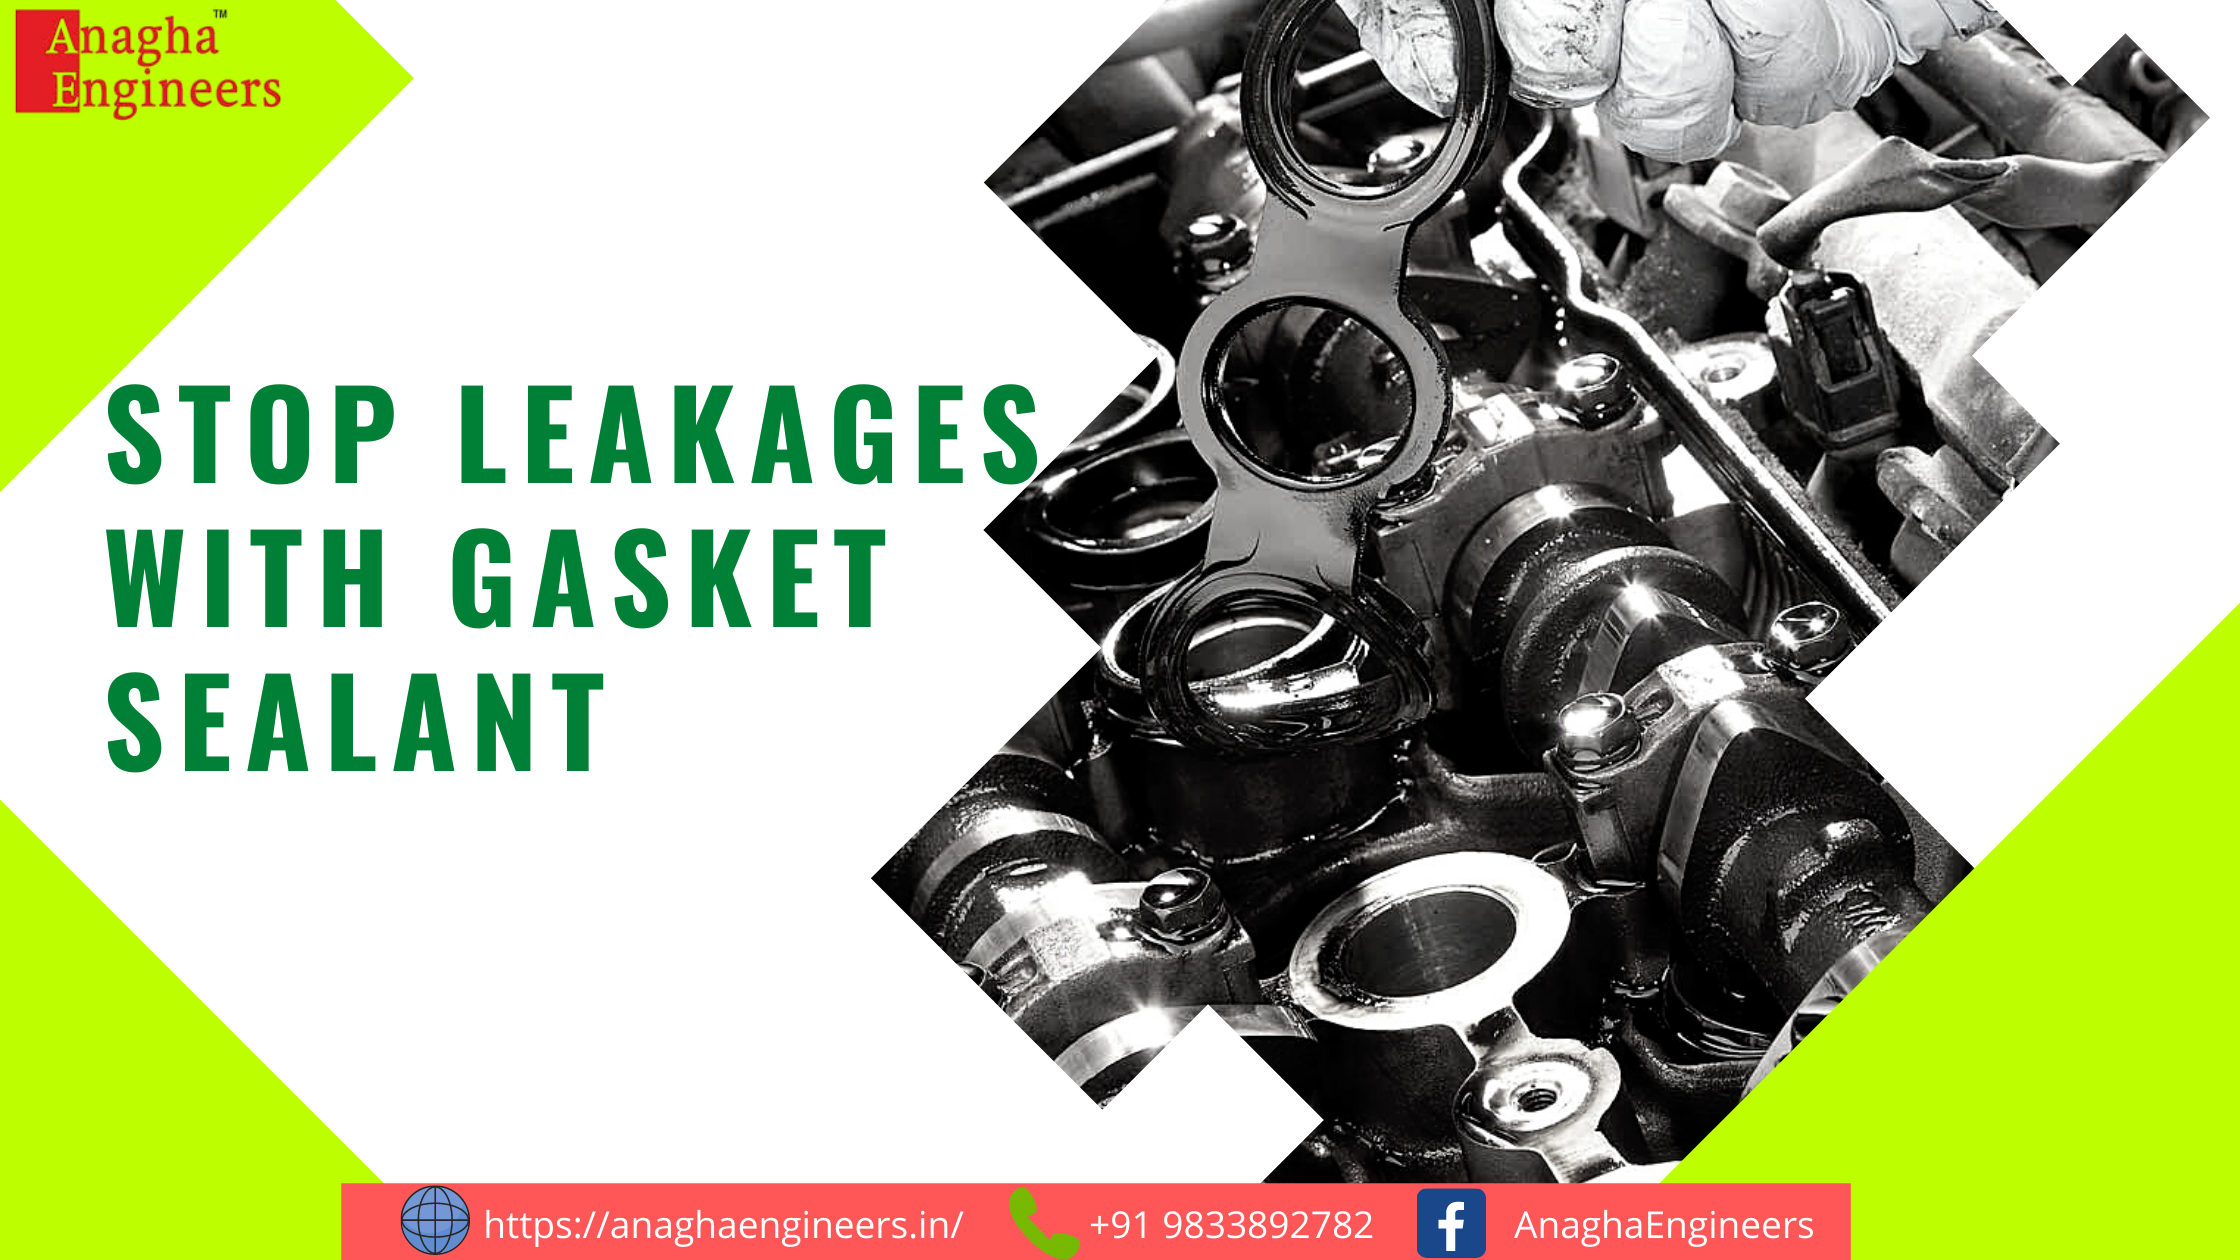 Replace Solid gasket with Liquid Flange sealant